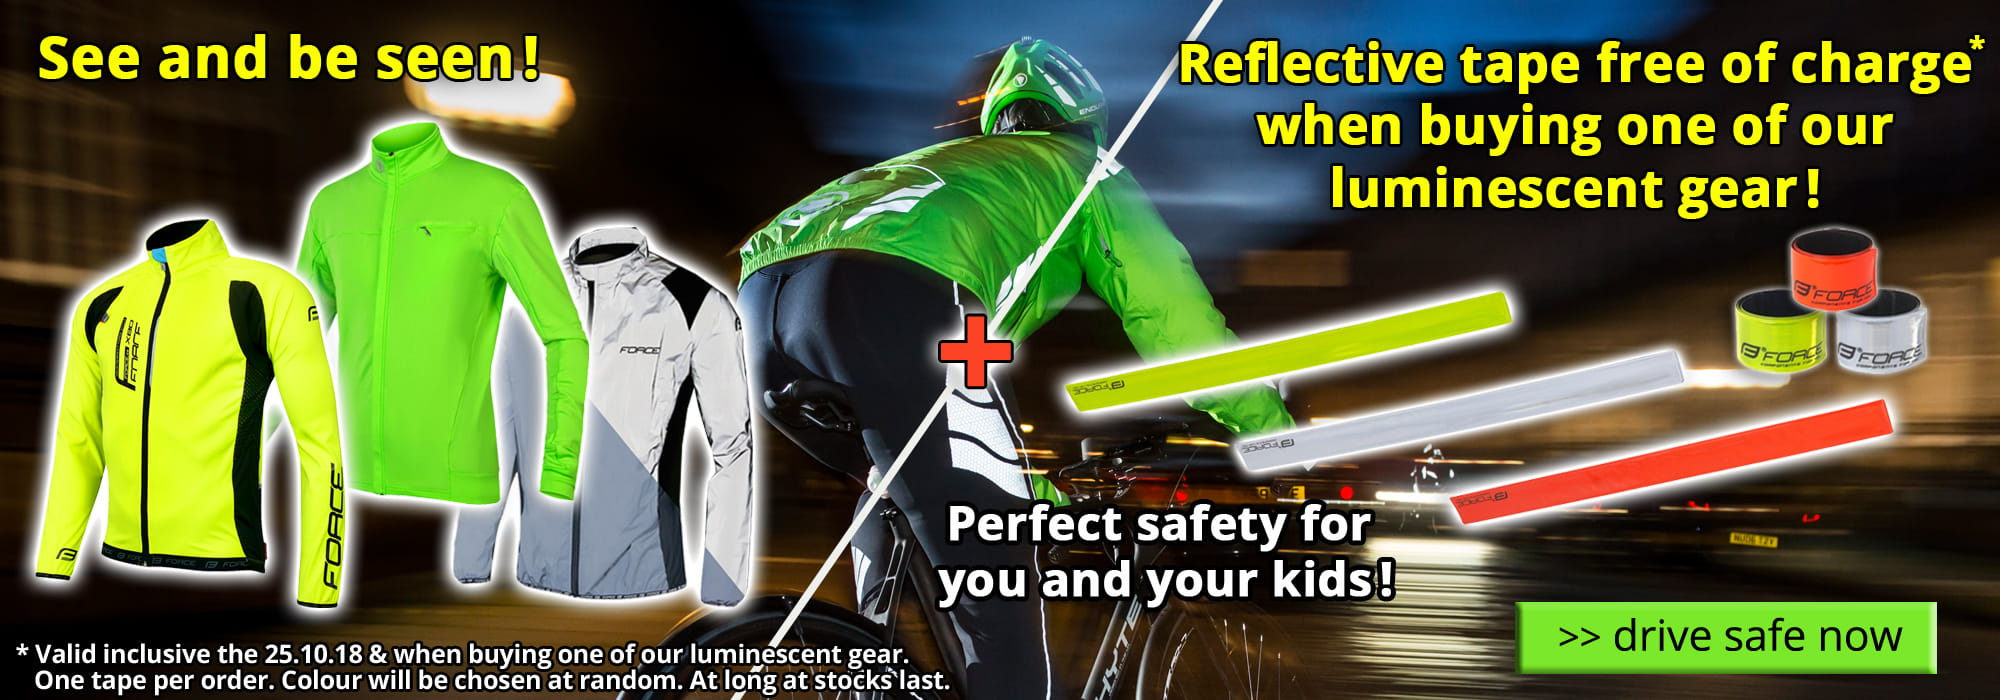 Reflective tape free of charge when buying luminescent gear